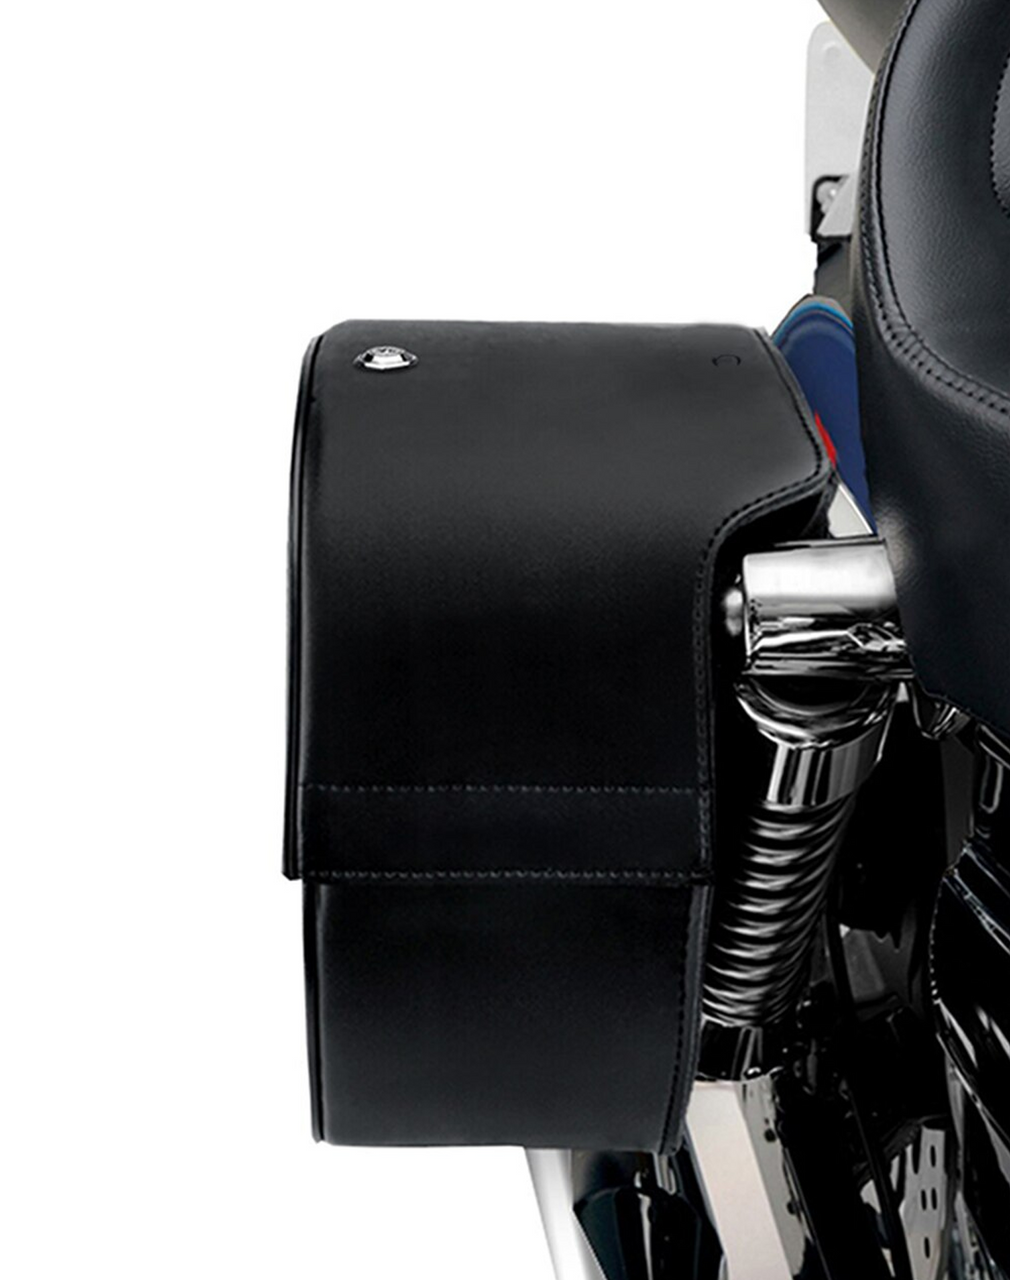 Honda Magna 750 Large Shock Cutout Slanted Motorcycle Saddlebags shock cutout view